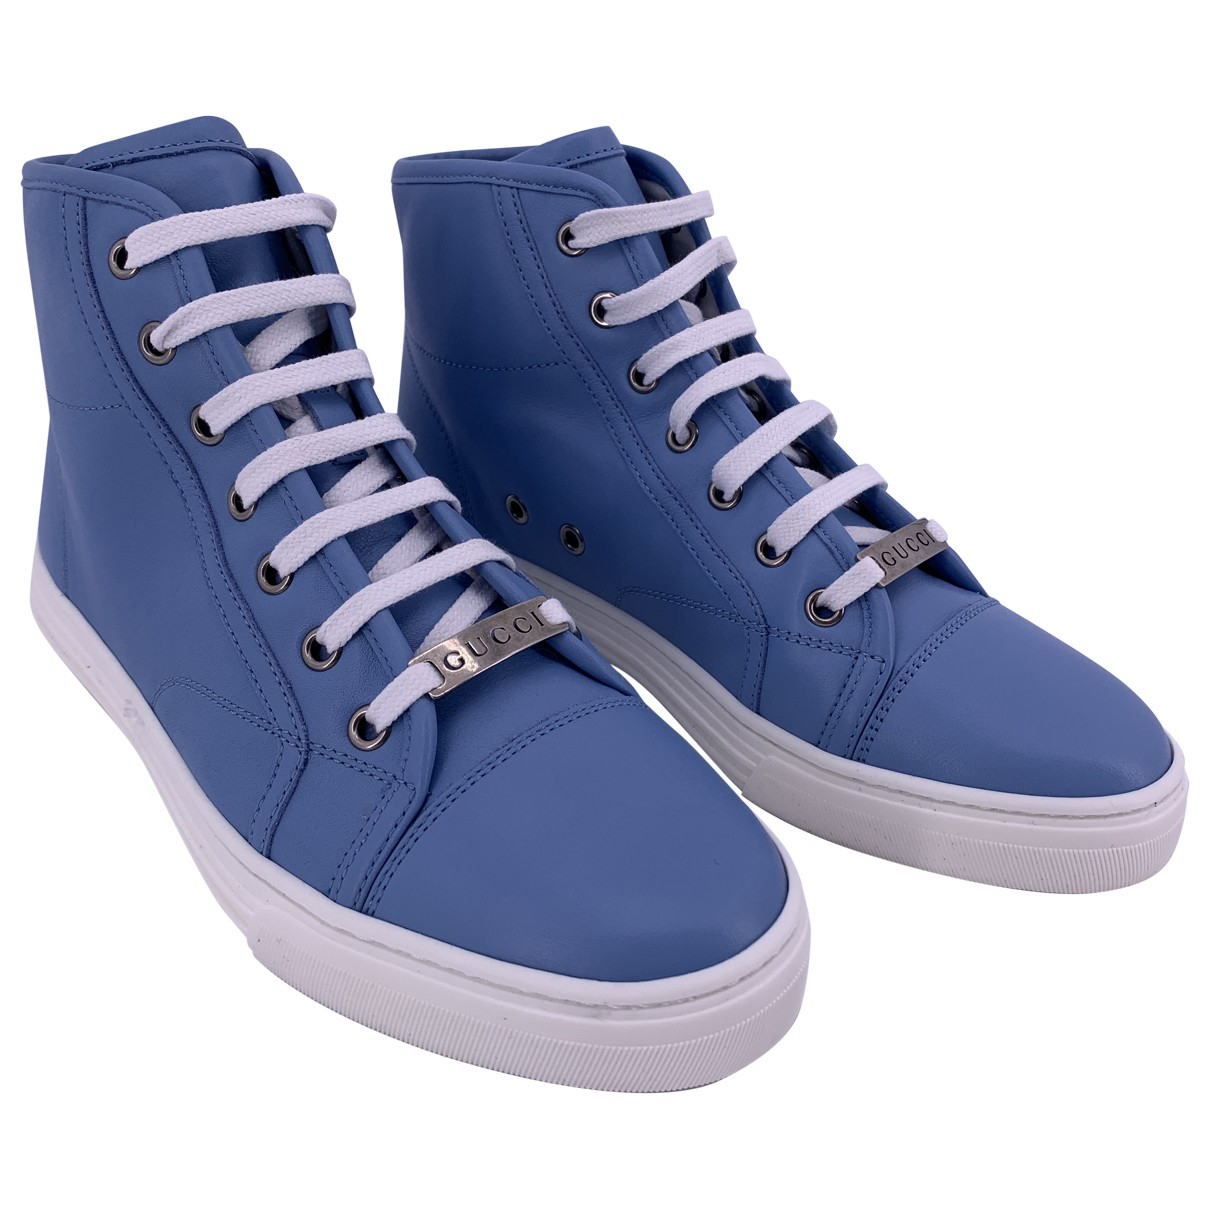 Gucci \N Sneakers in  Blau Leder